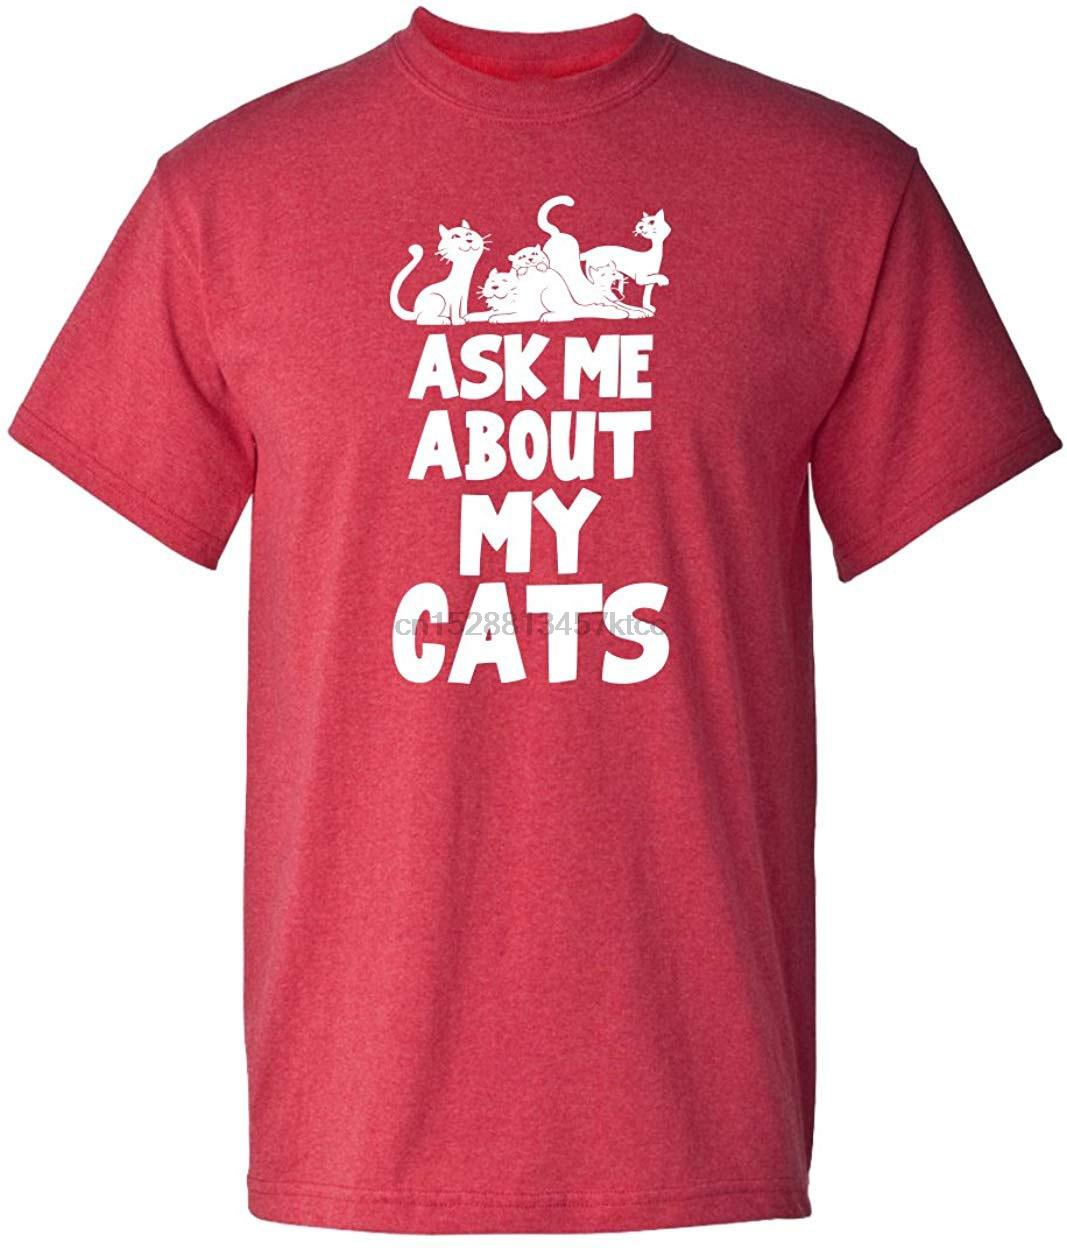 Ask Me About My Cats Kitty Animal Funny Humor Mens Unisex Adult T Shirt Men Women TEE Shirt Breathable Tops